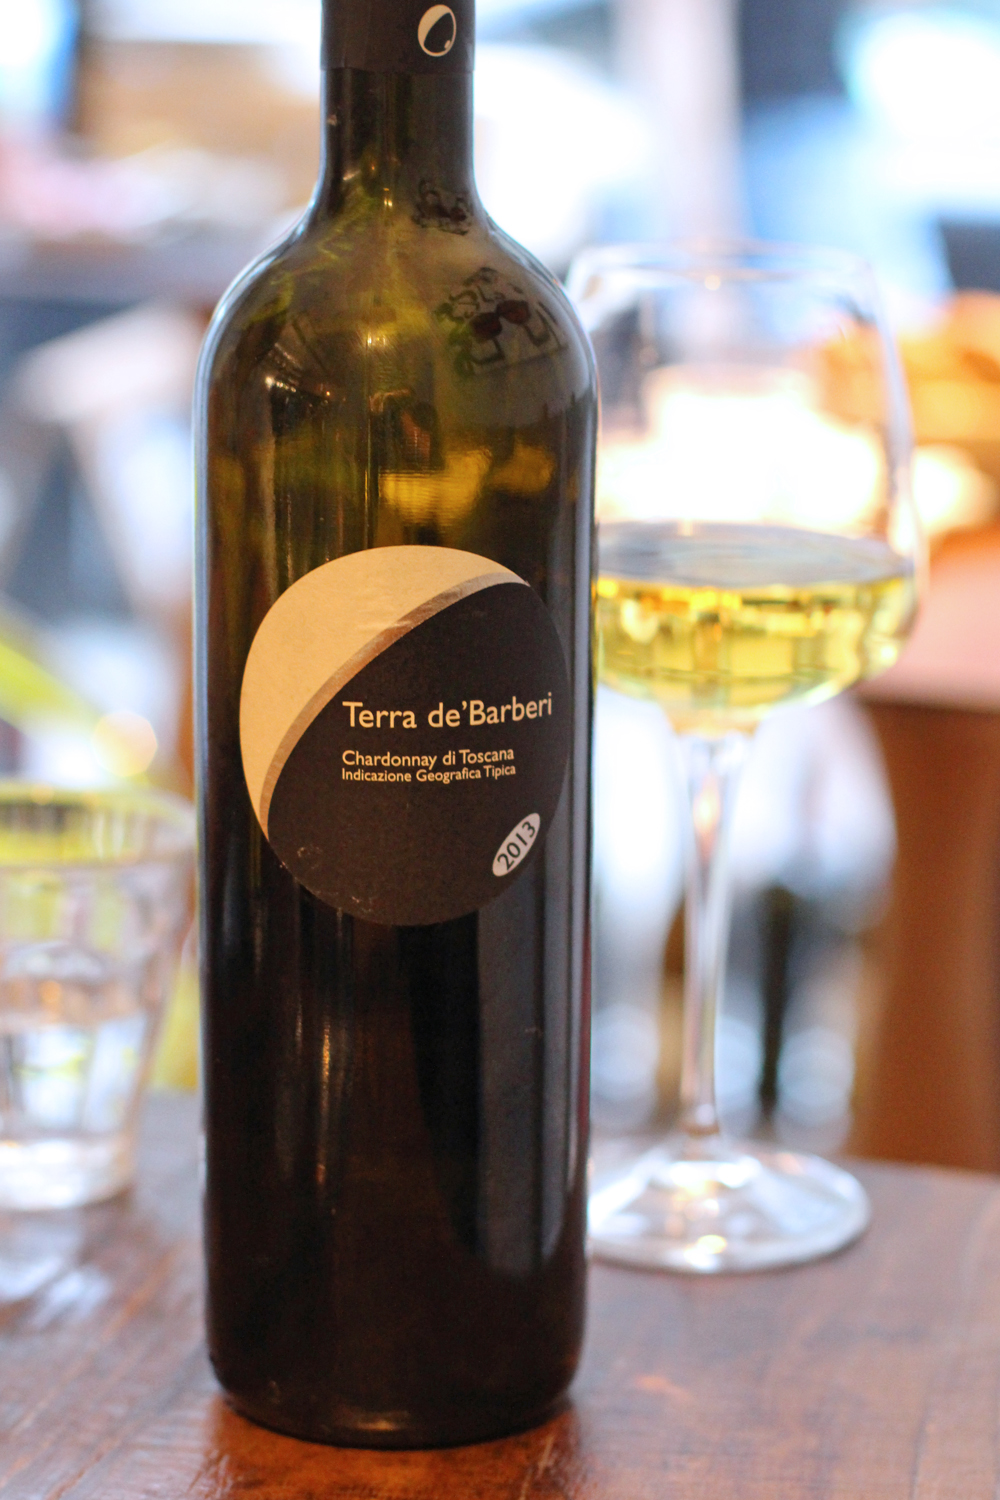 Terra de'Barberi chardonnay at Enoteca Pomaio, Brick Lane - London lifestyle blog